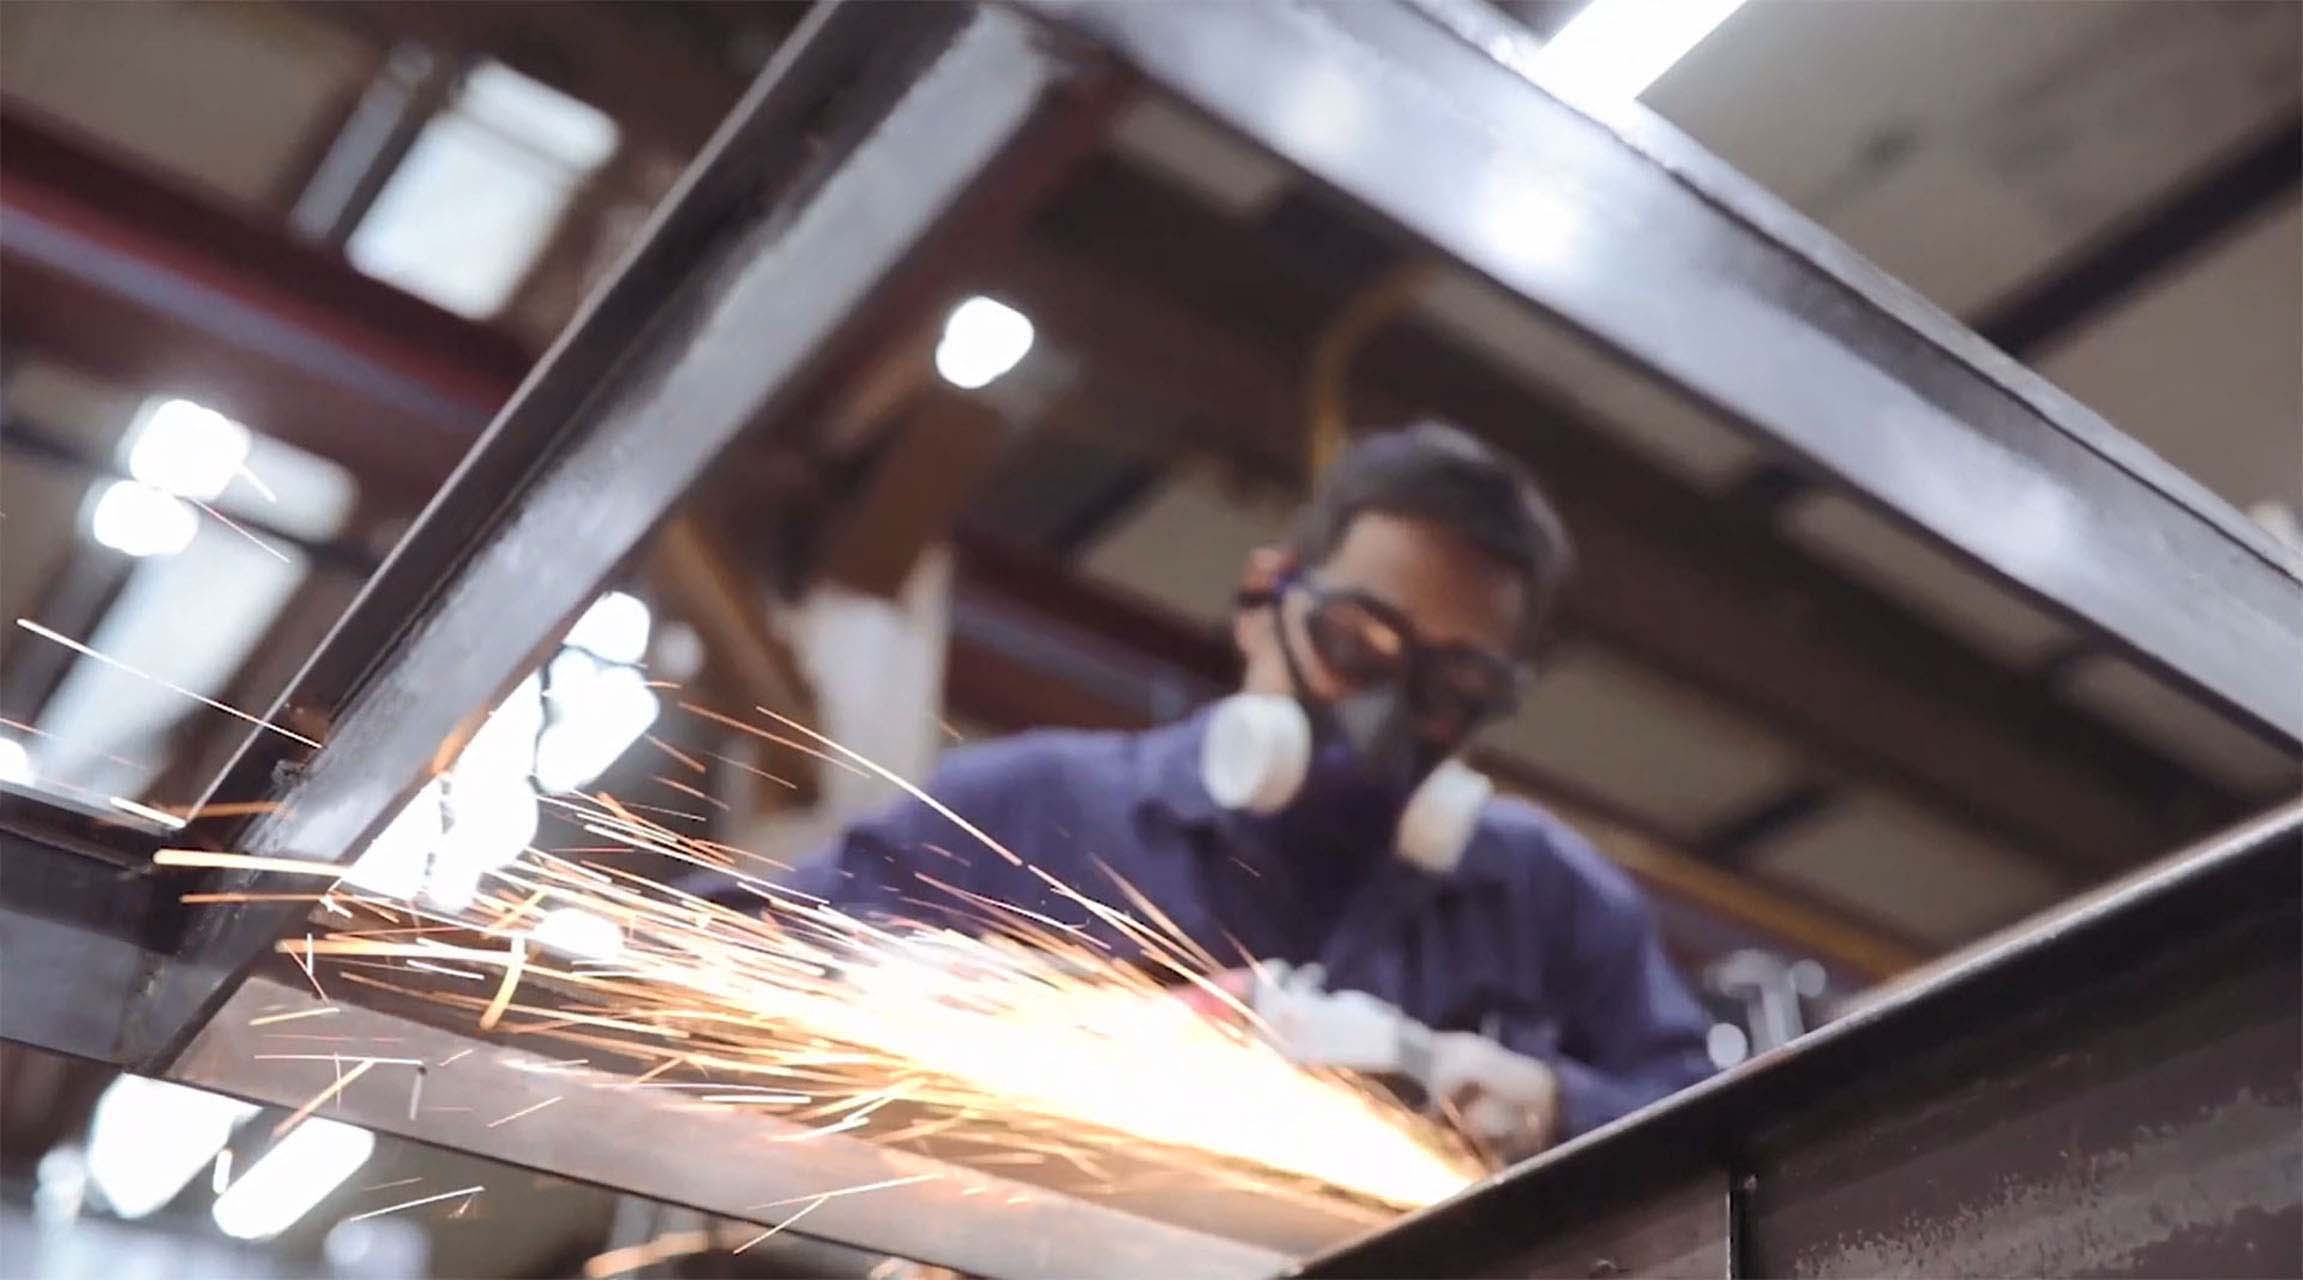 MHB craftsman welding an SL30-ISO profile system